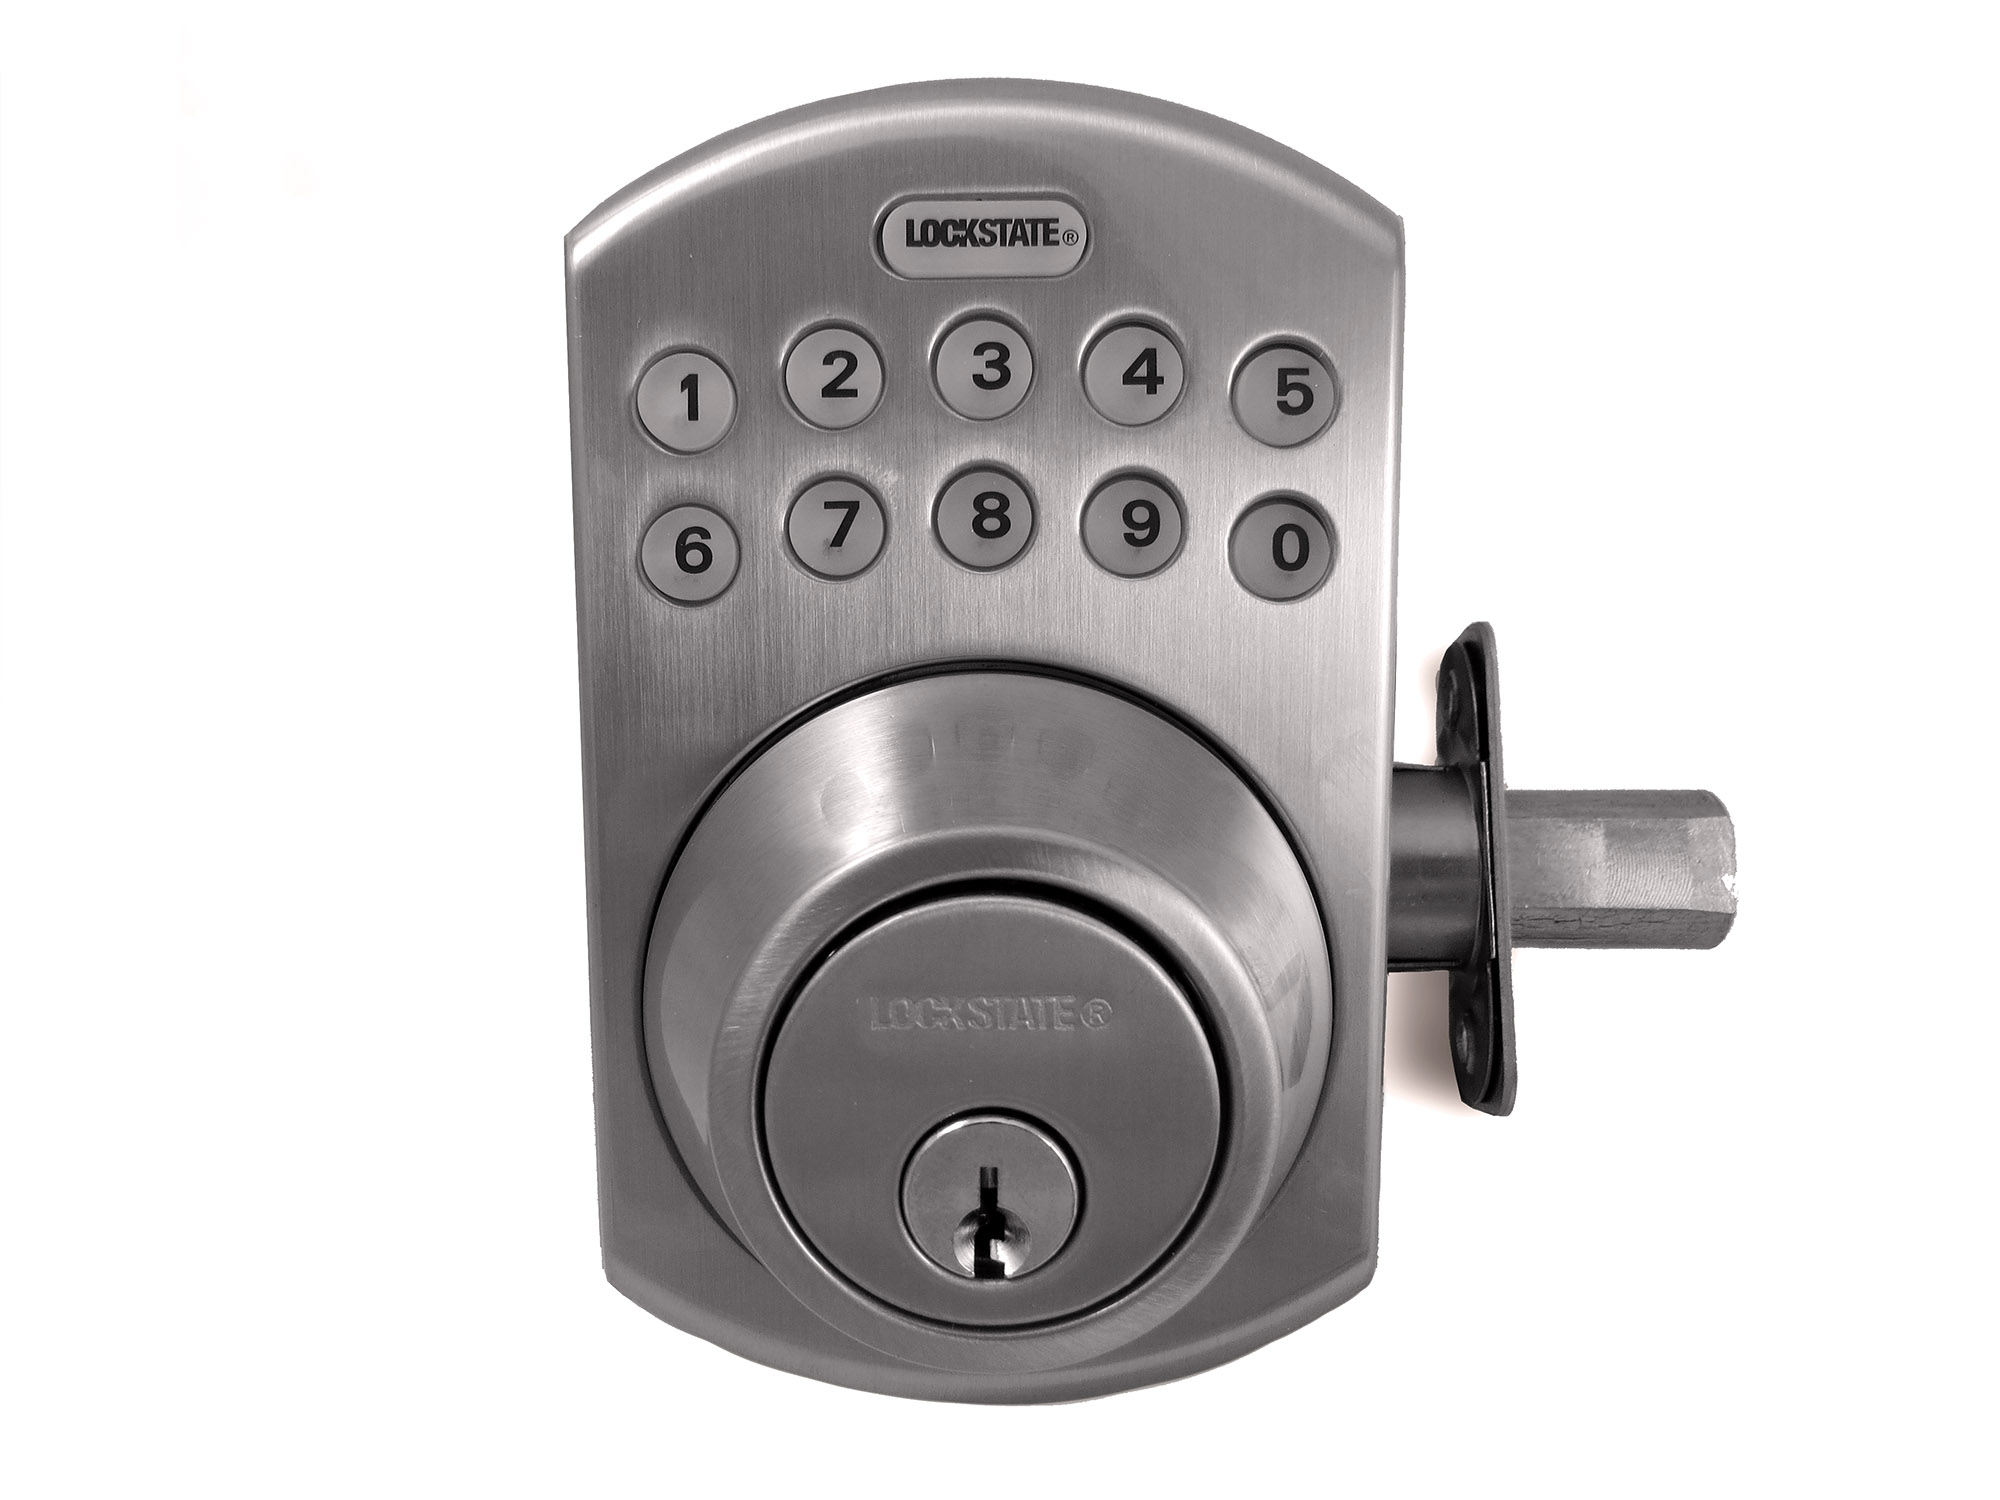 LockState RemoteLock Deadbolt 5i-B WiFi